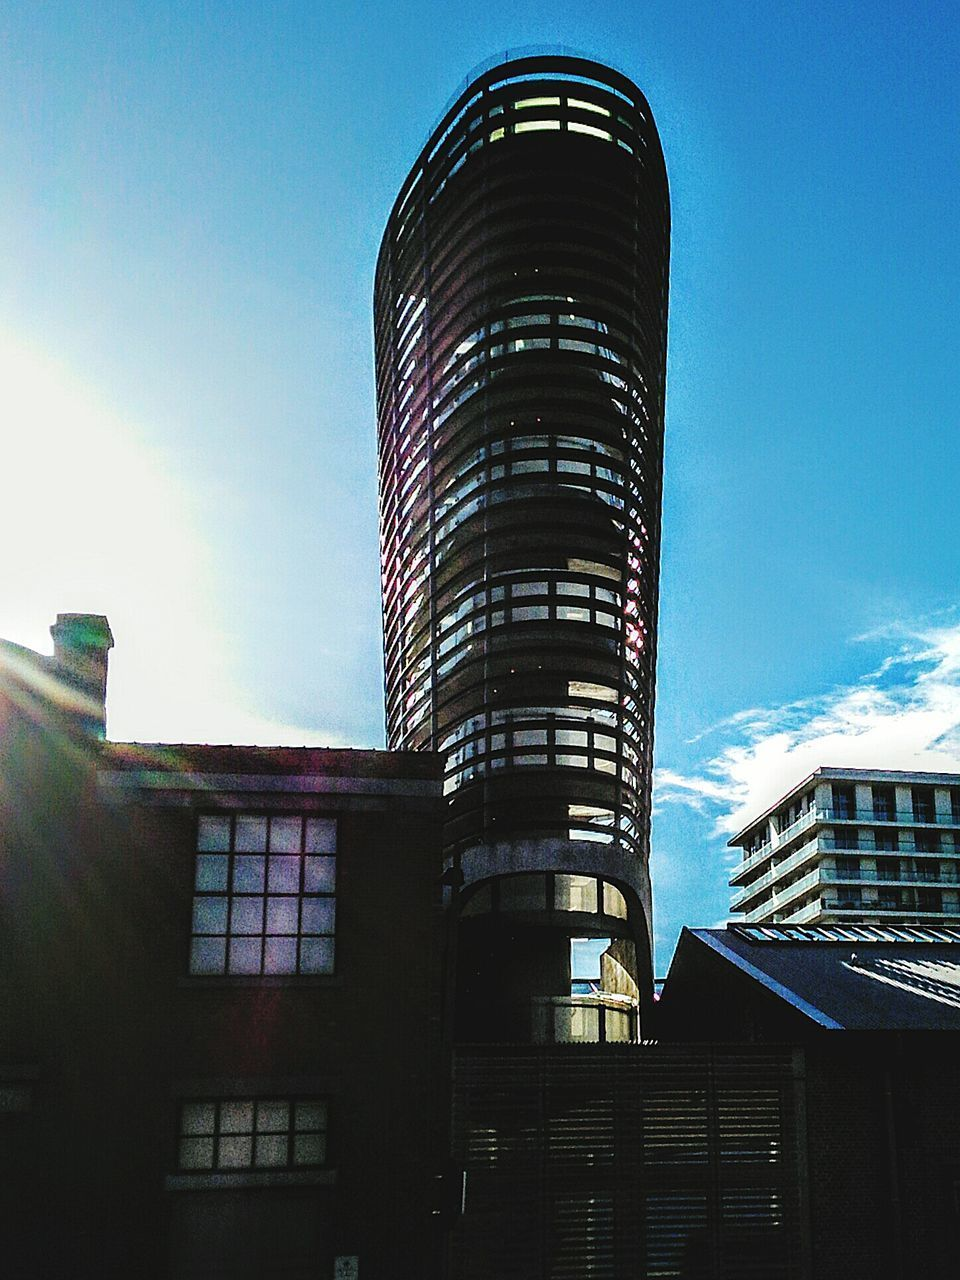 architecture, building exterior, built structure, low angle view, sky, sunlight, day, window, skyscraper, modern, no people, outdoors, city